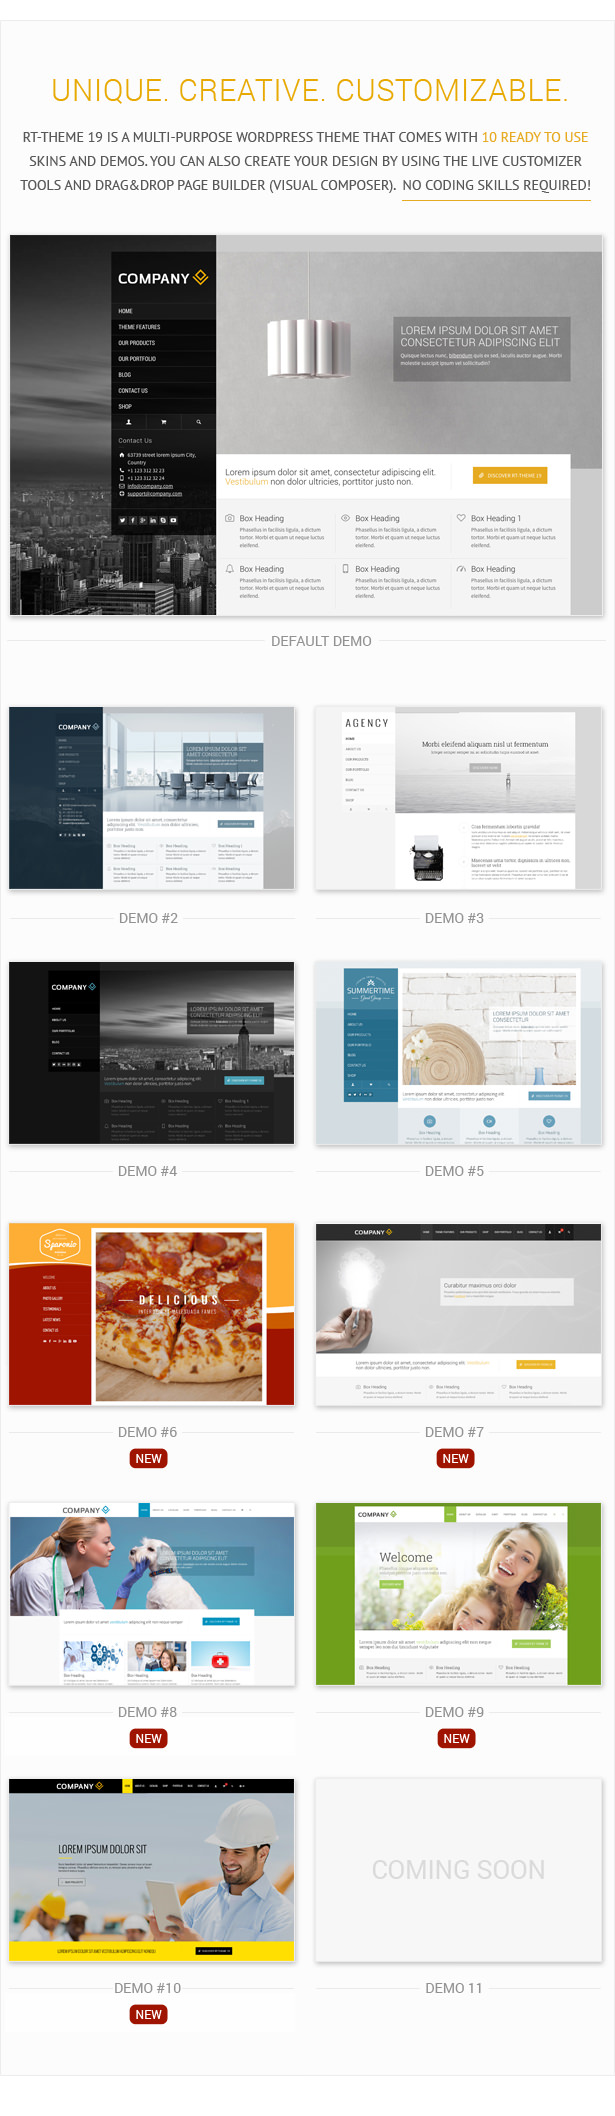 WordPress theme RT-Theme19 | Responsive Multi-Purpose WP Theme (Business)